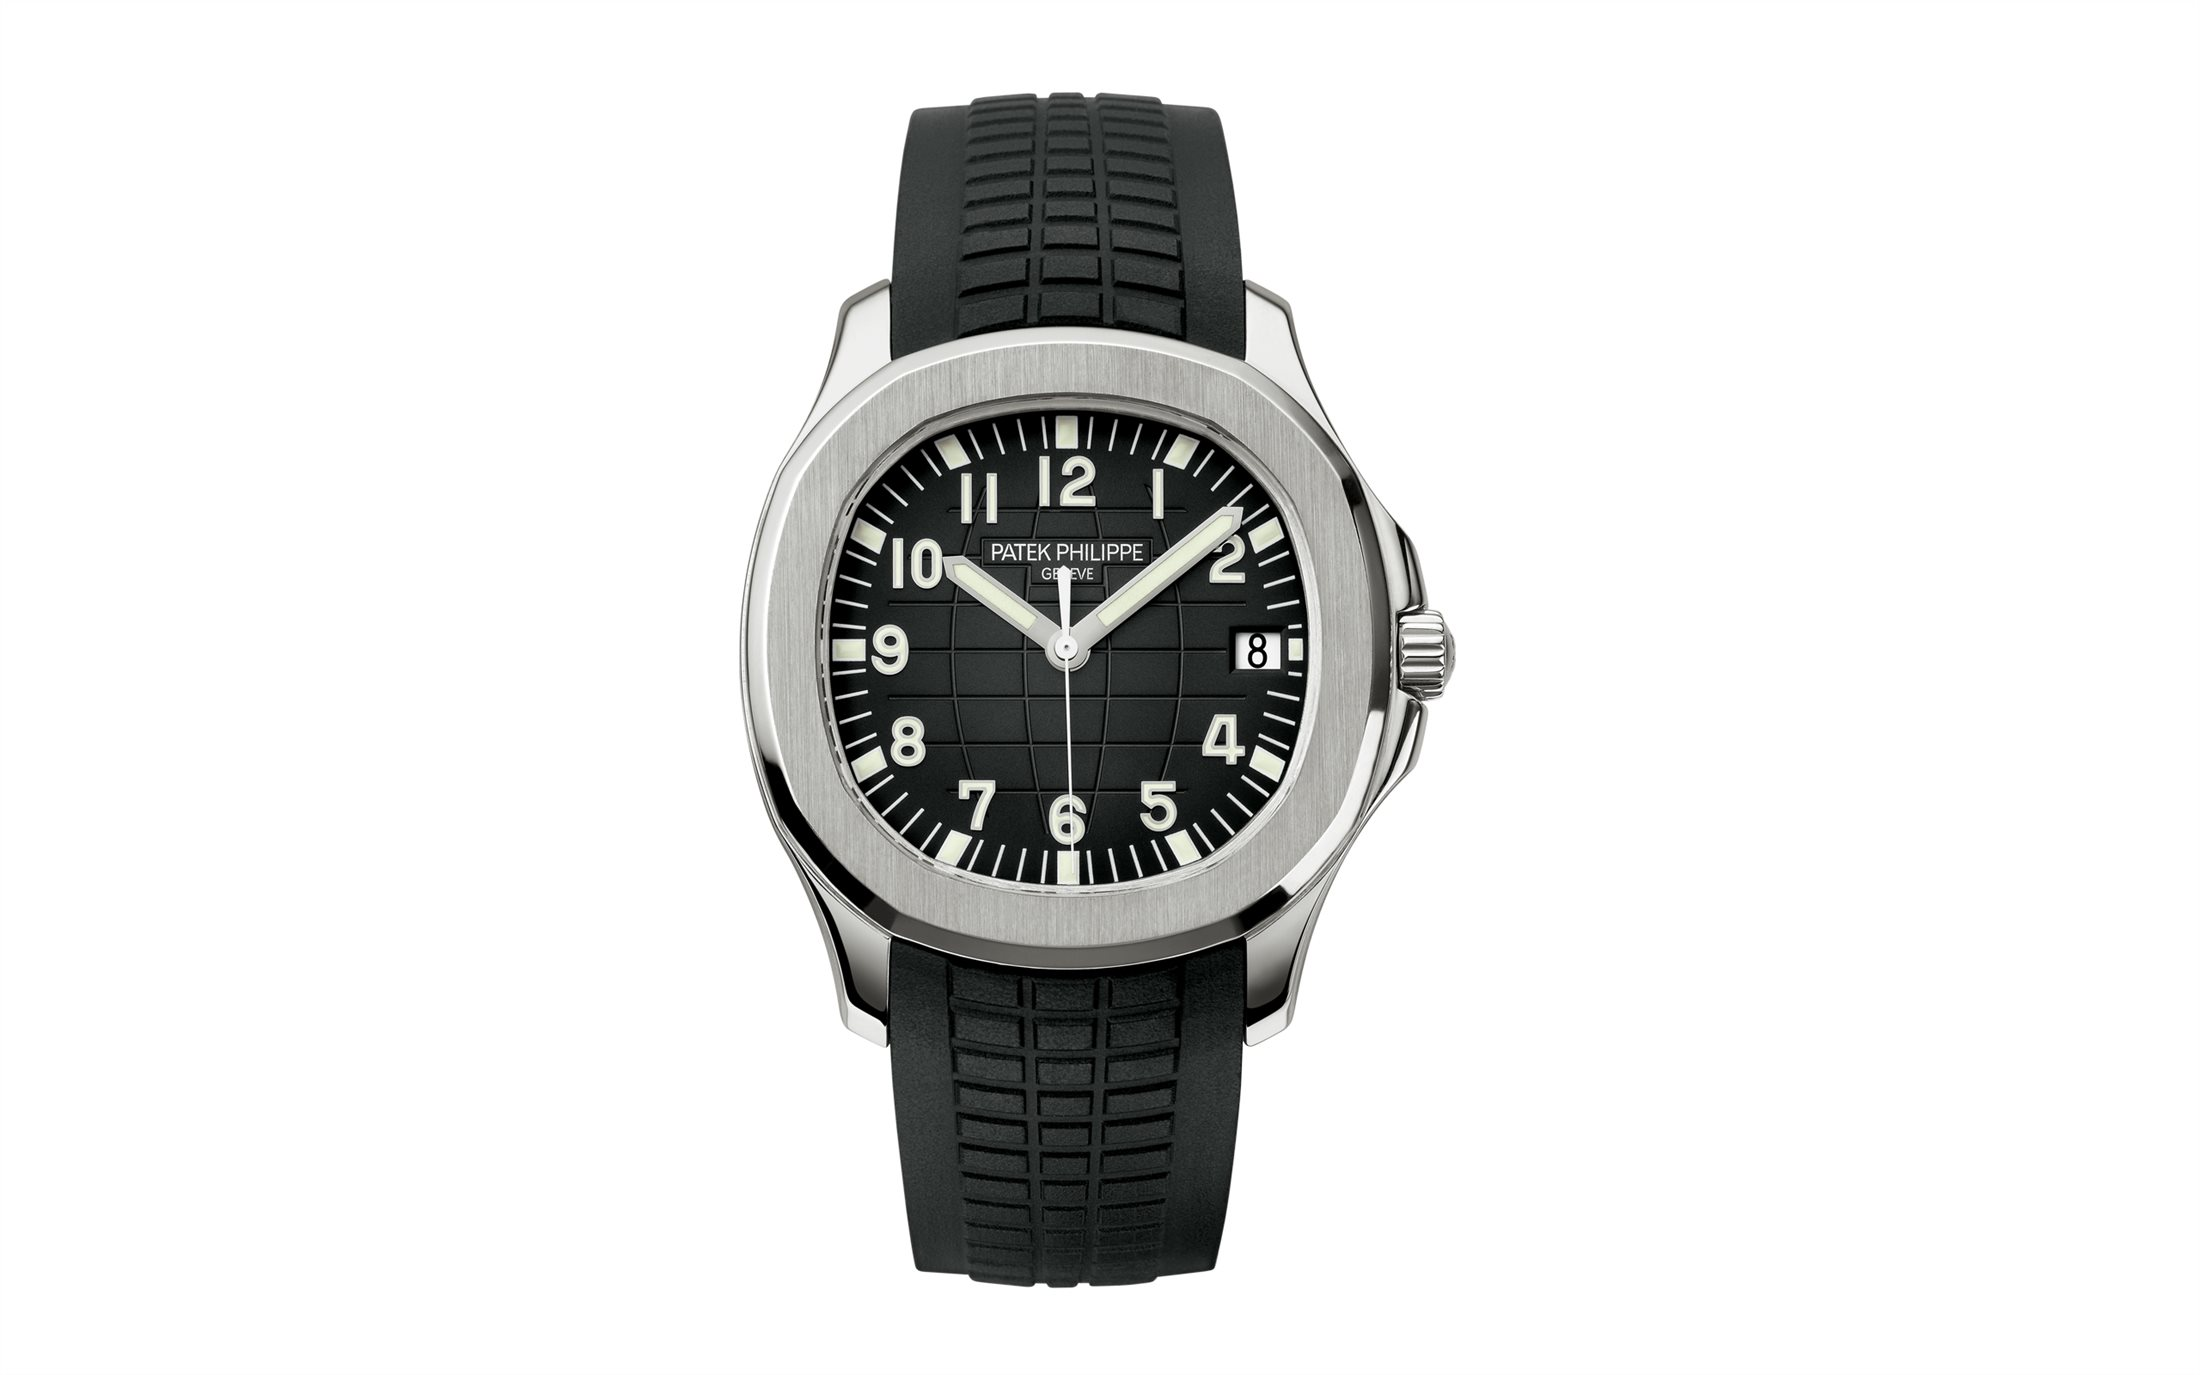 The Patek Philippe Aquanaut has combined the sporty style with the elegance perfectly.